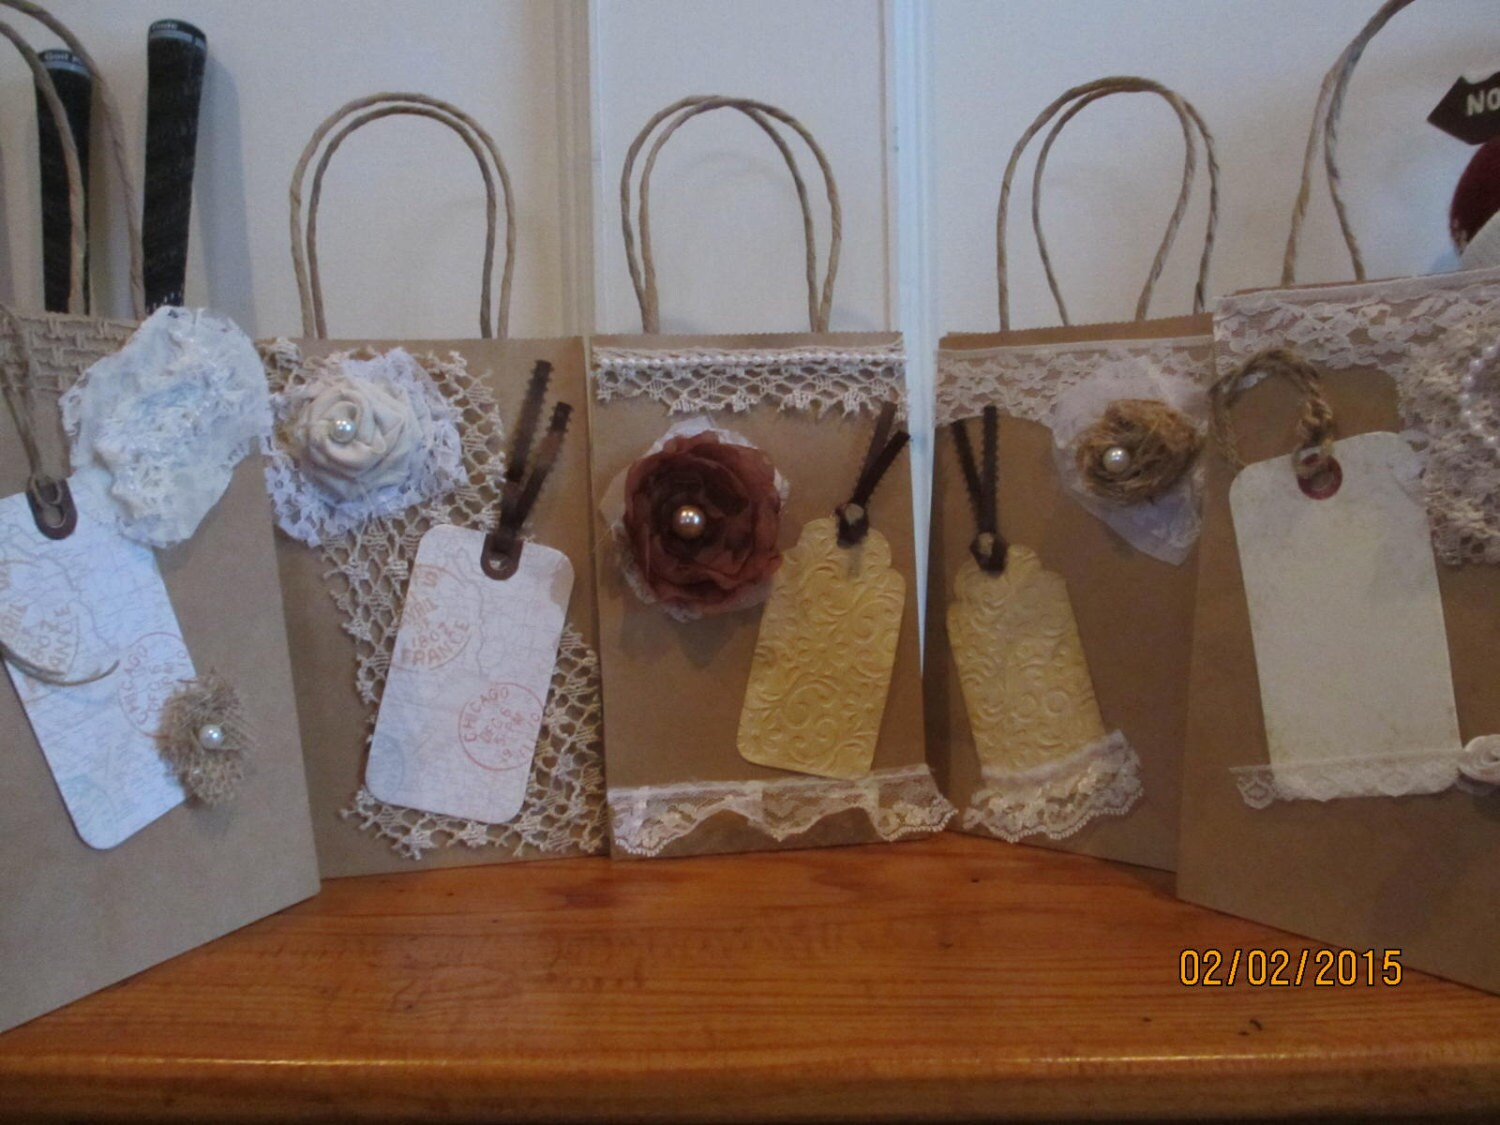 New Item Sale 5 Assorted Rustic Shabby Chic Hotel Wedding